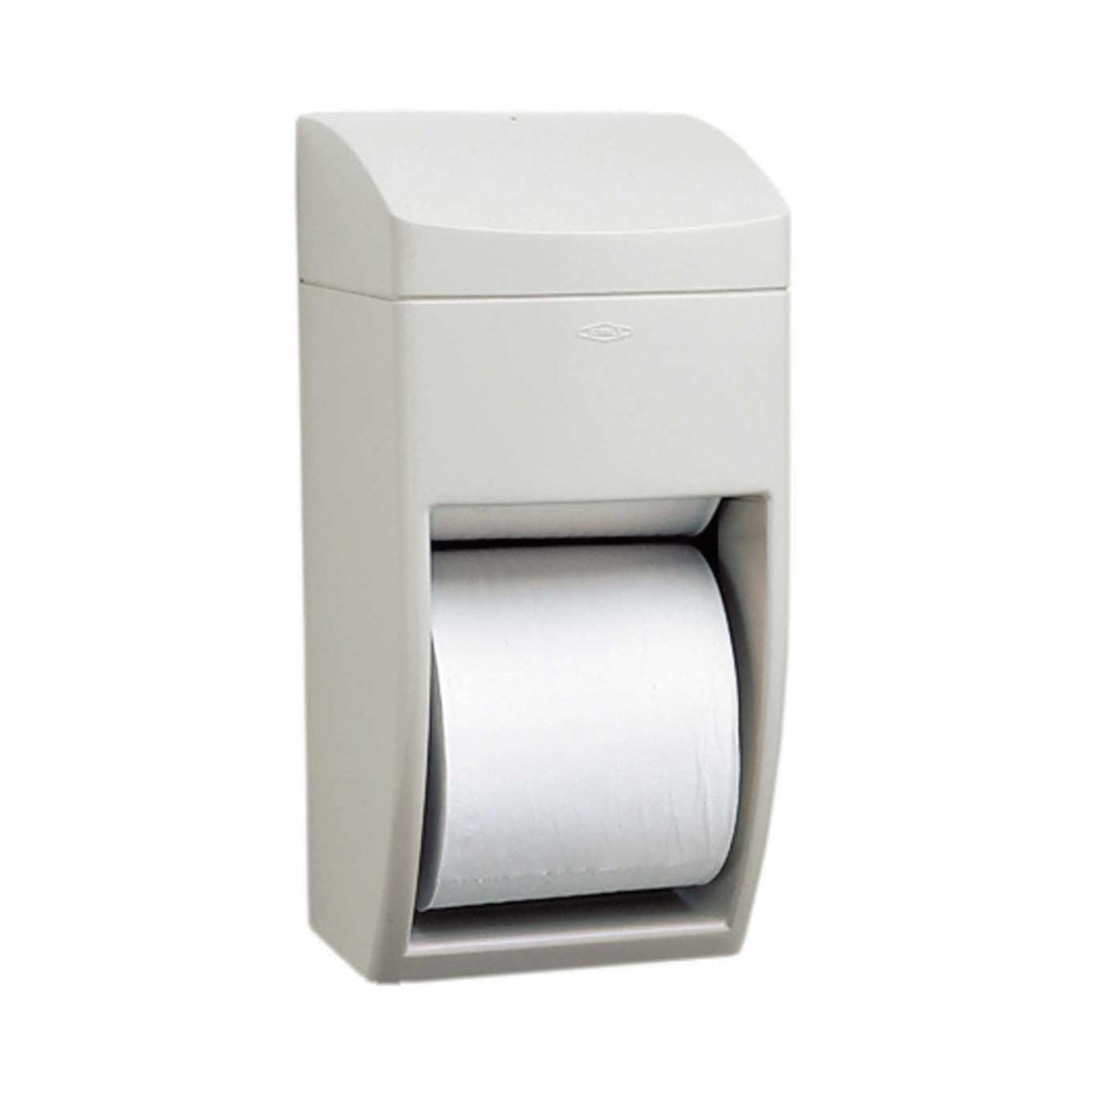 Picture of Bobrick MatrixSeries BO-5288 Multi-Roll Toilet Tissue Dispenser, 5-3/4 in Roll, Plastic, Gray